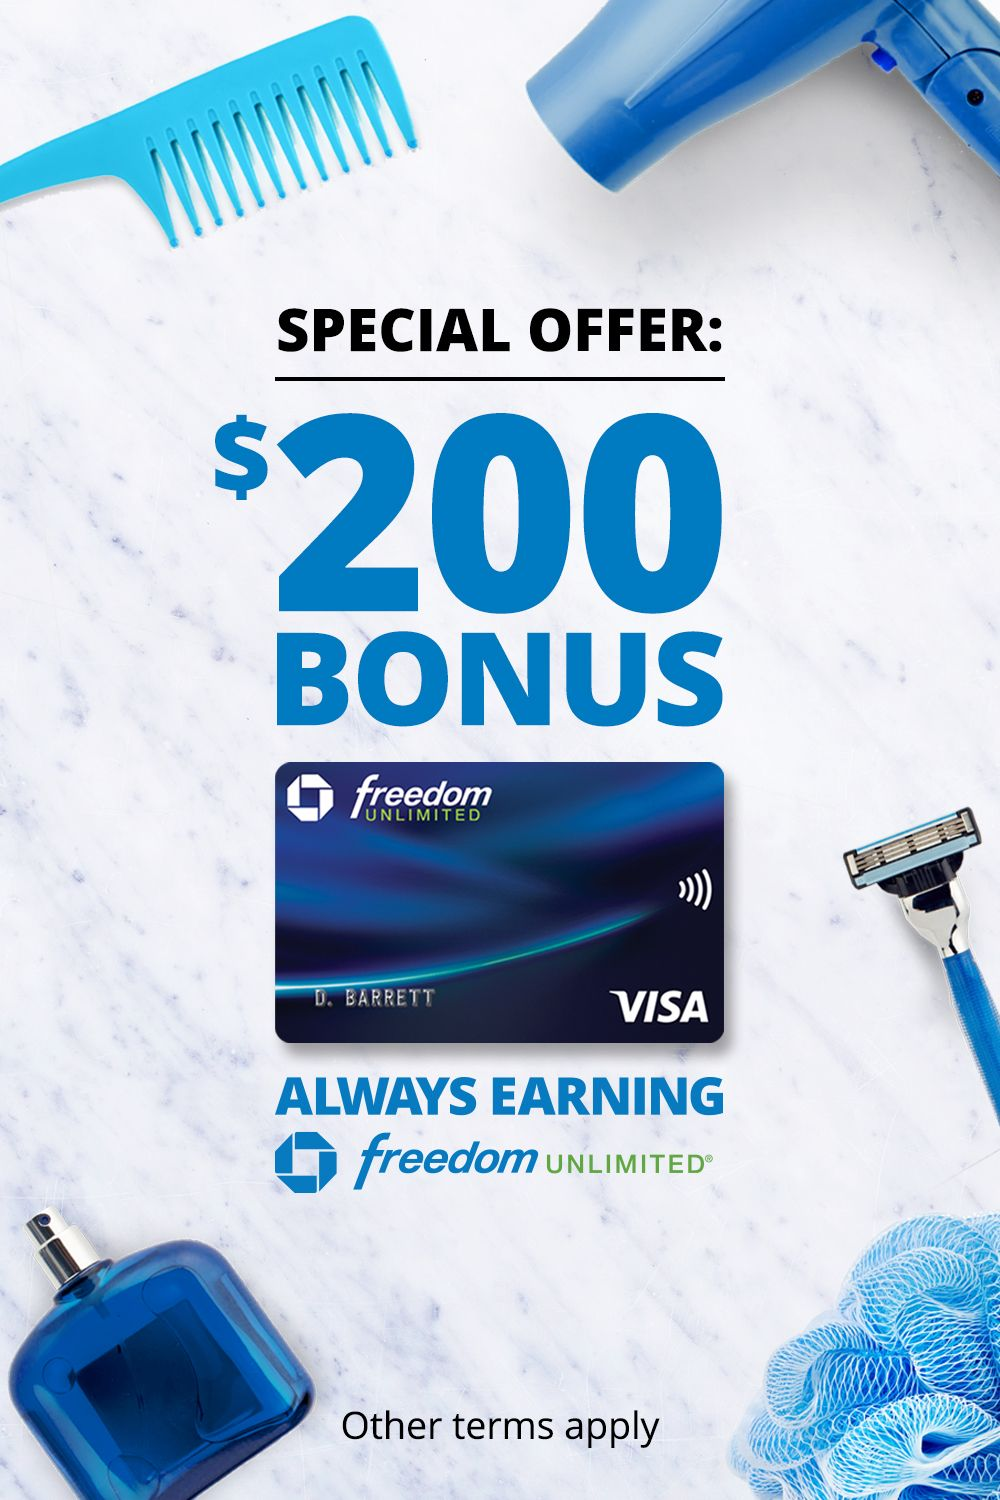 Get 0 Intro Apr For 15 Mos Plus No Annual Fee Chase Freedom Unlimited Always Earning Tips Commercial Coupons